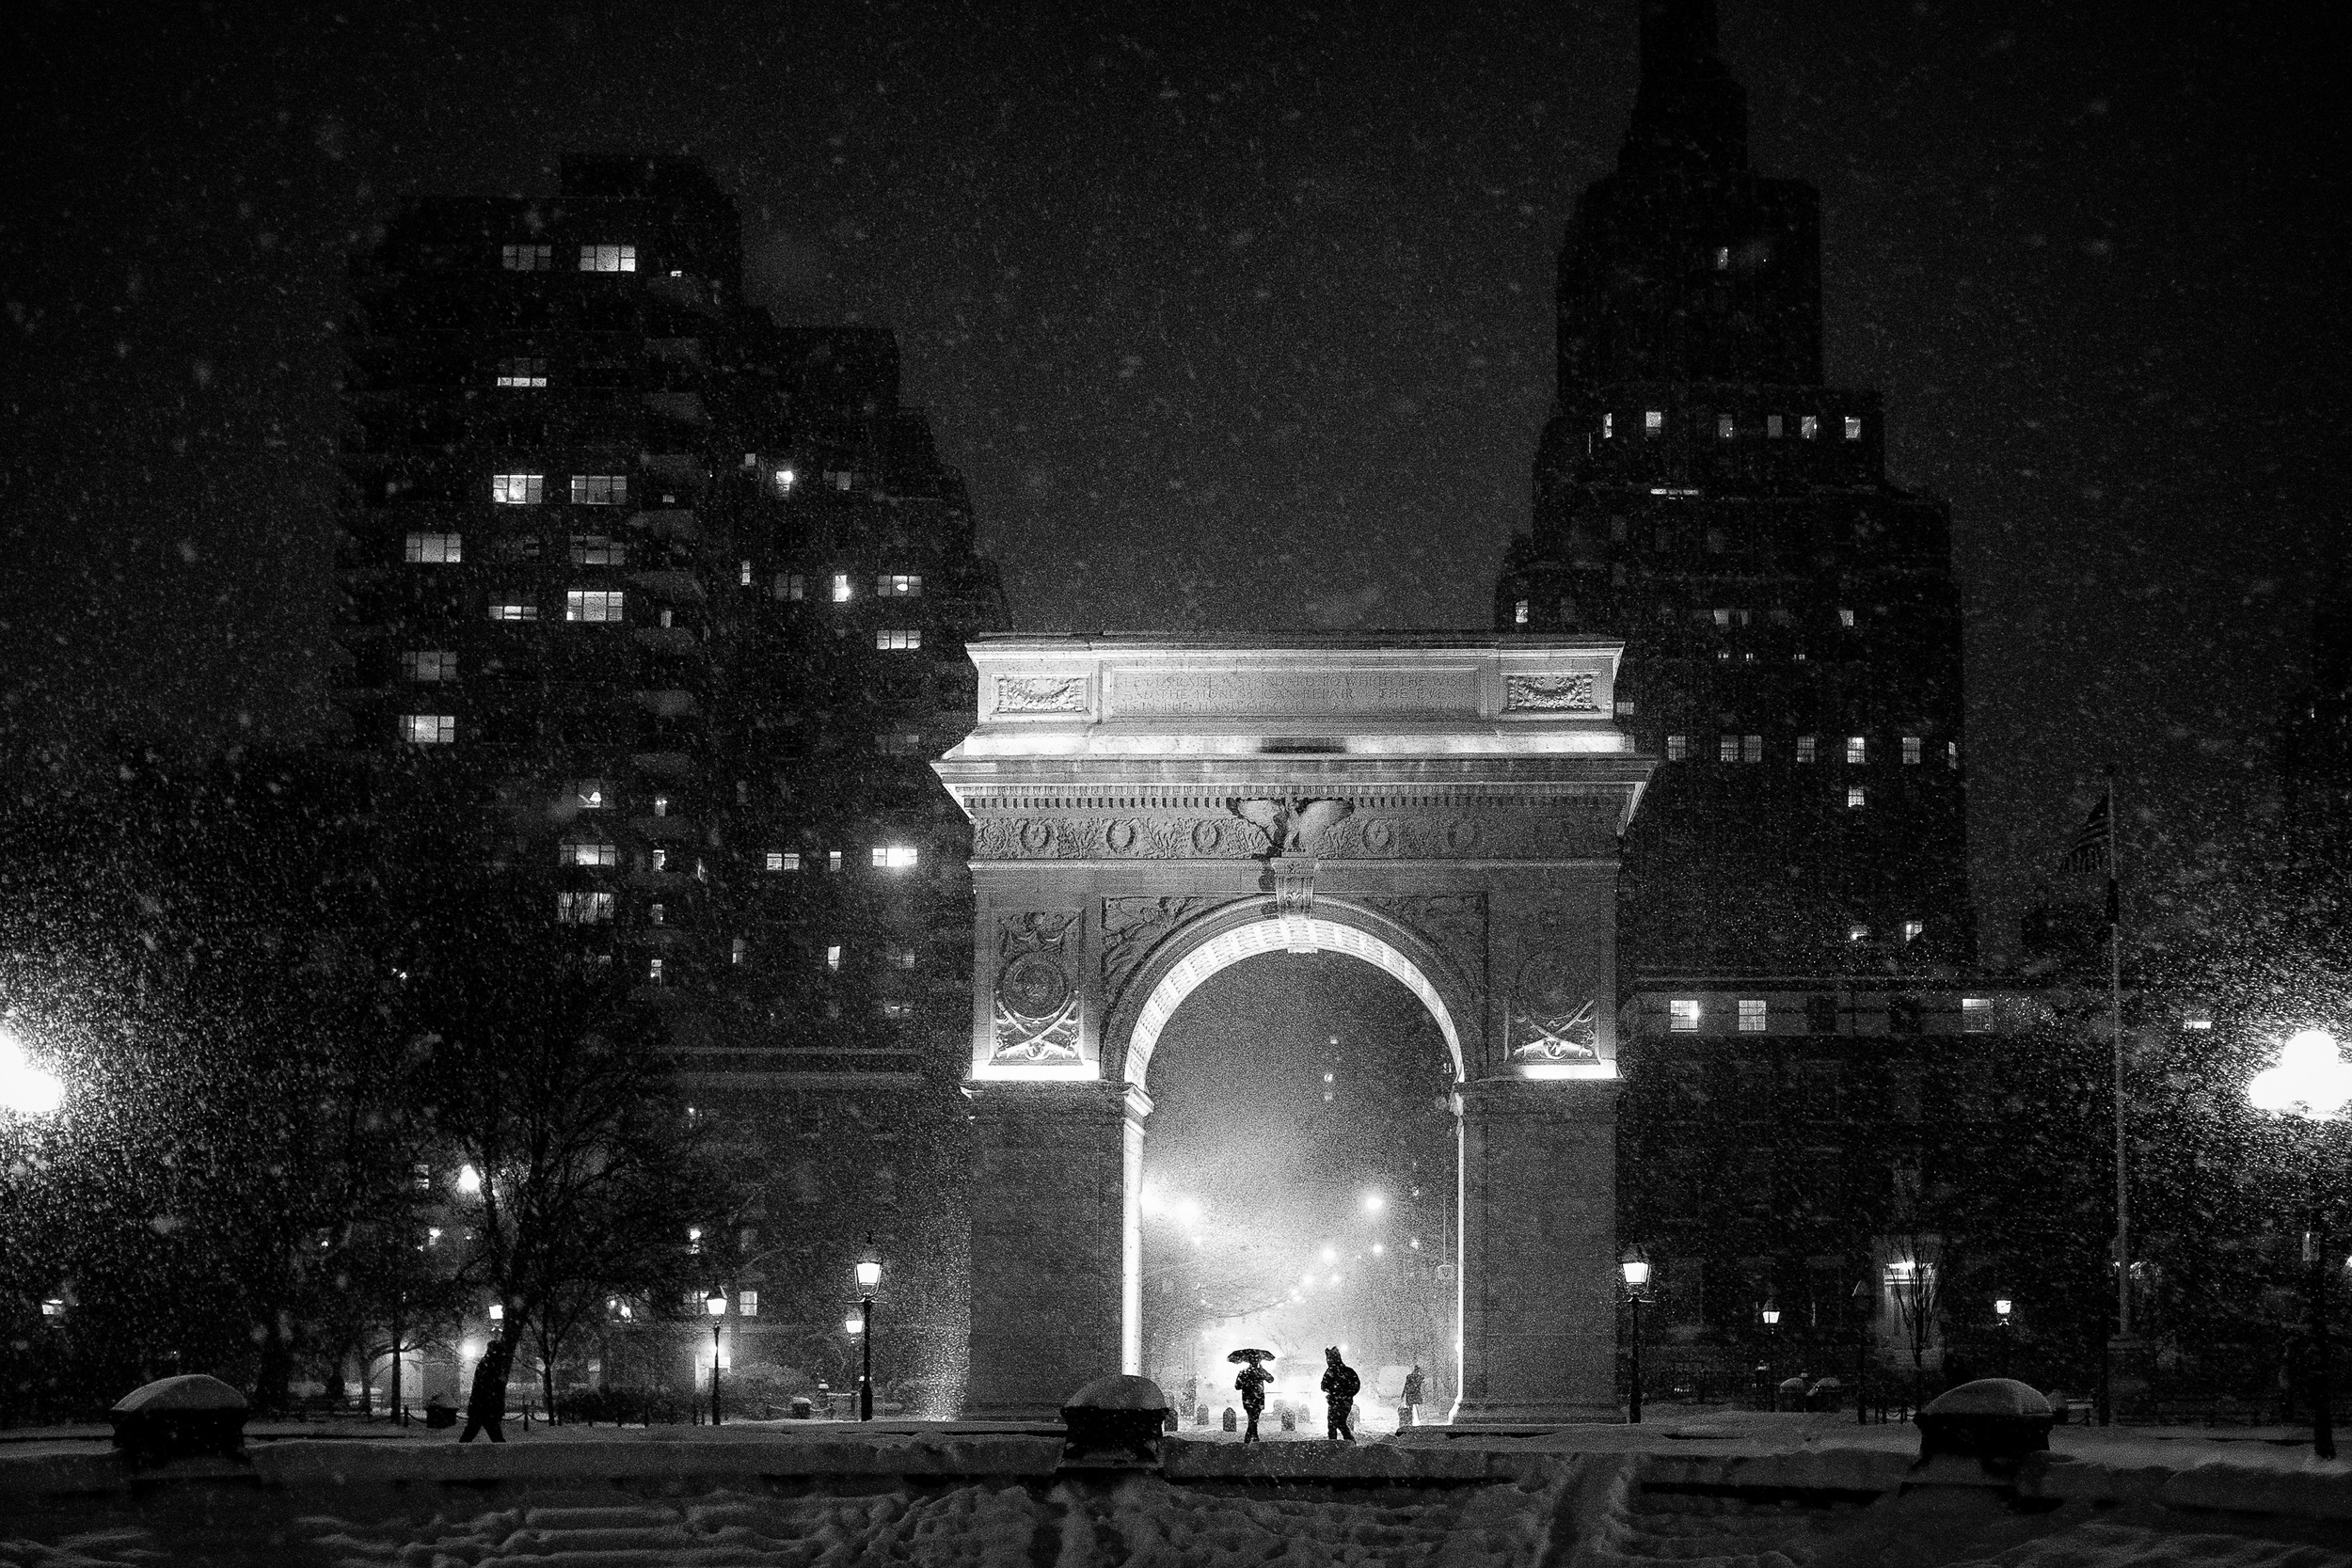 The Arch at Washington Square Park